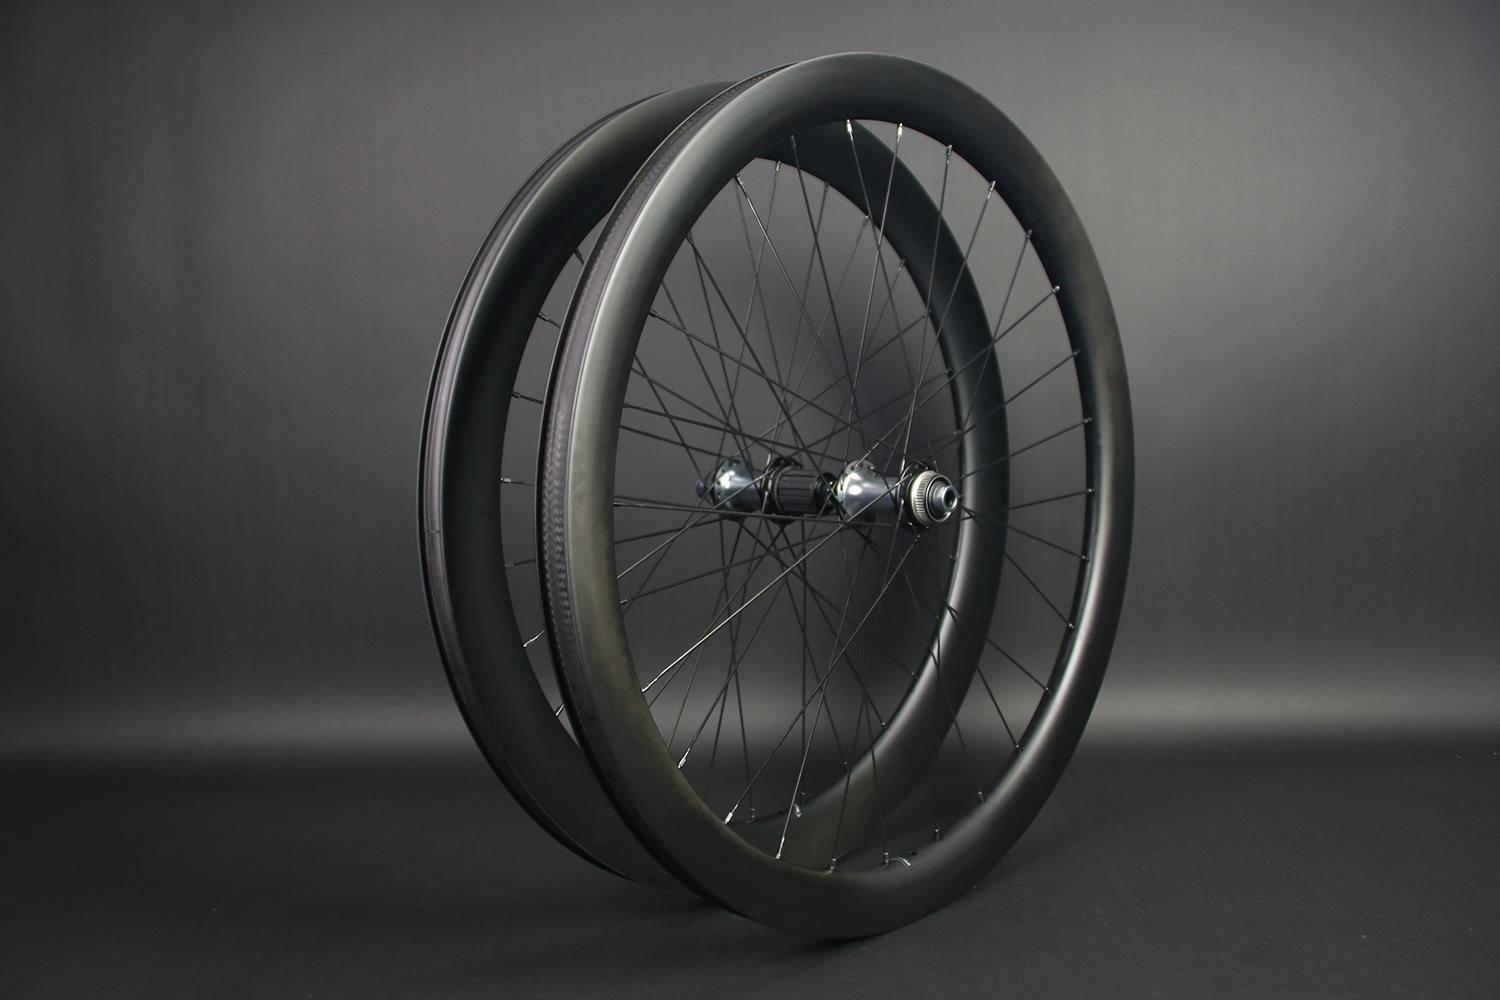 WR45-Front-AR56-Rear-700C-mixed-depth-tubeless-wheelset